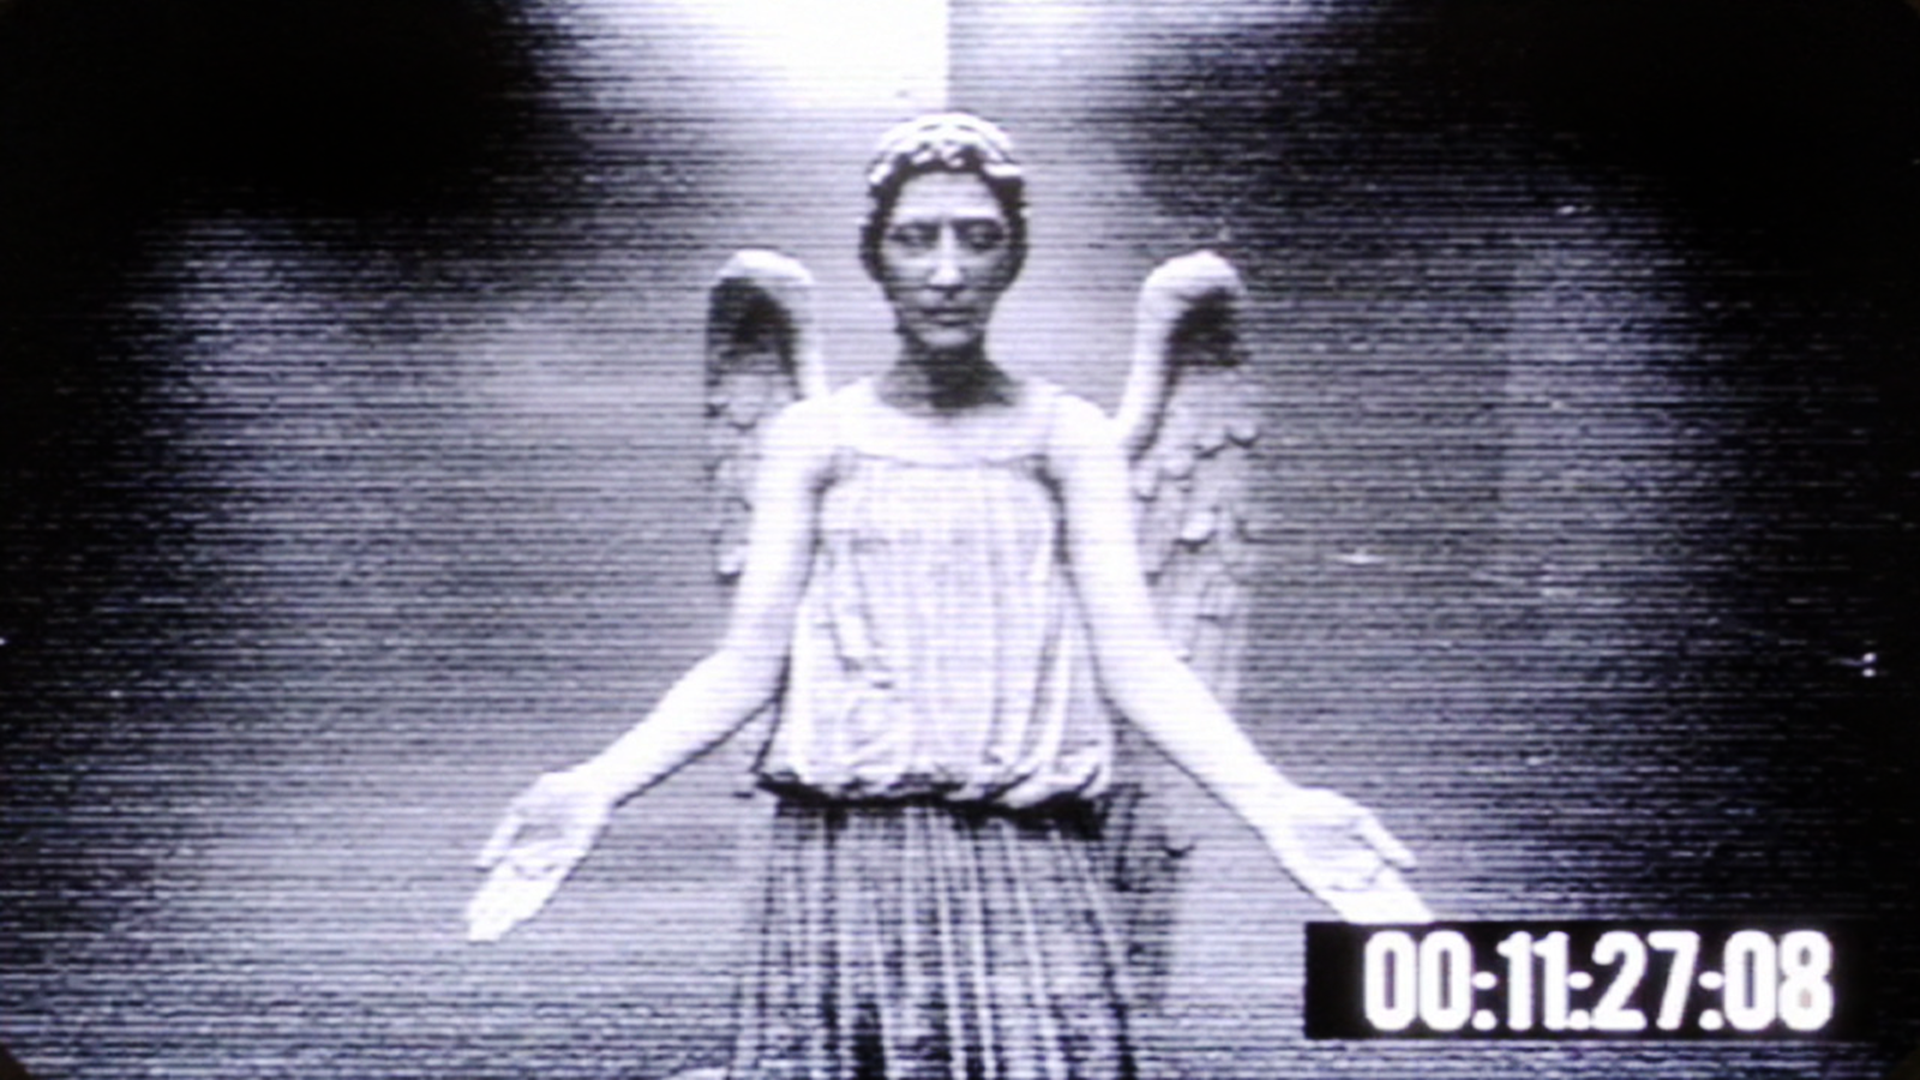 Weeping Angels wallpapers Set it to change every few seconds for some 1920x1080